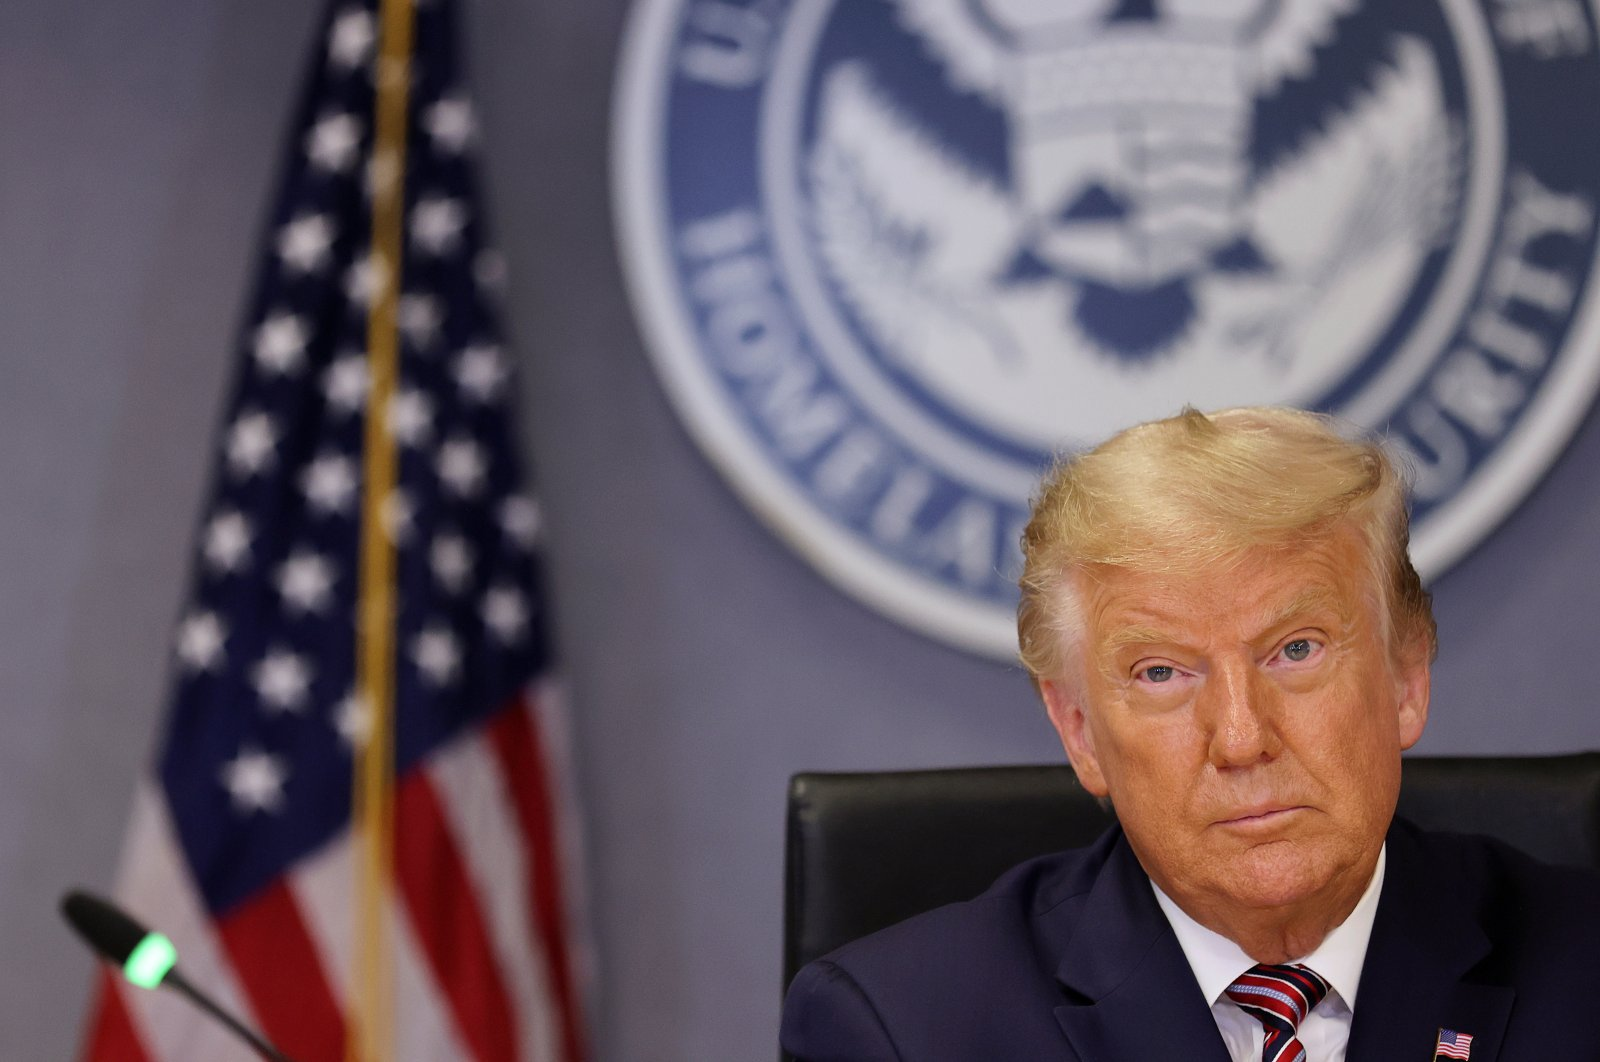 U.S. President Donald President Trump listens during a briefing on Hurricane Laura at the Federal Emergency Management Agency (FEMA) headquarters, Washington, U.S., Aug. 27, 2020. (REUTERS Photo)